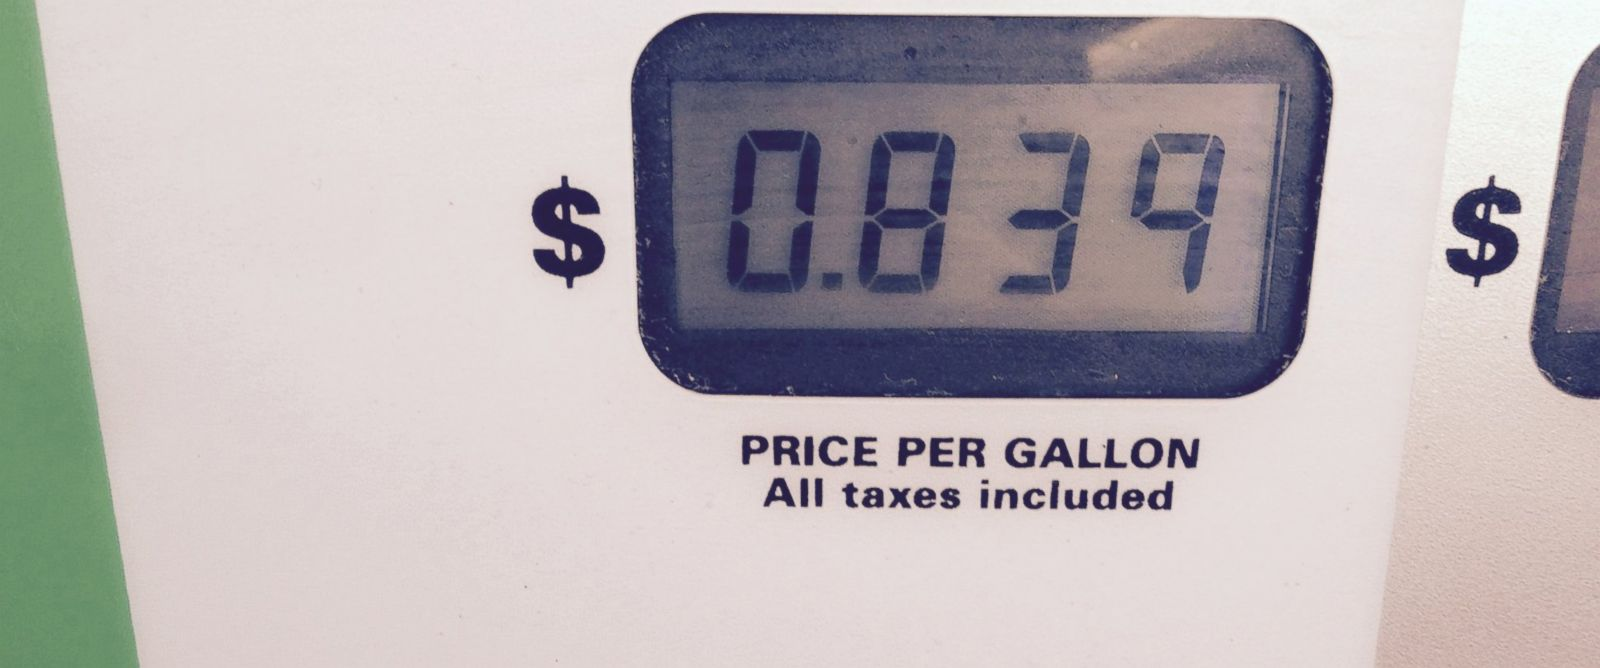 PHOTO: A Fry's fuel points promotion allows customers to fill up with gas at 84 cents a gallon at a Circle K gas station in Phoenix, Jan. 18, 2014. Fry's Food Stores, Shell and Circle K gas stations participate in the fuel points program in Arizona.